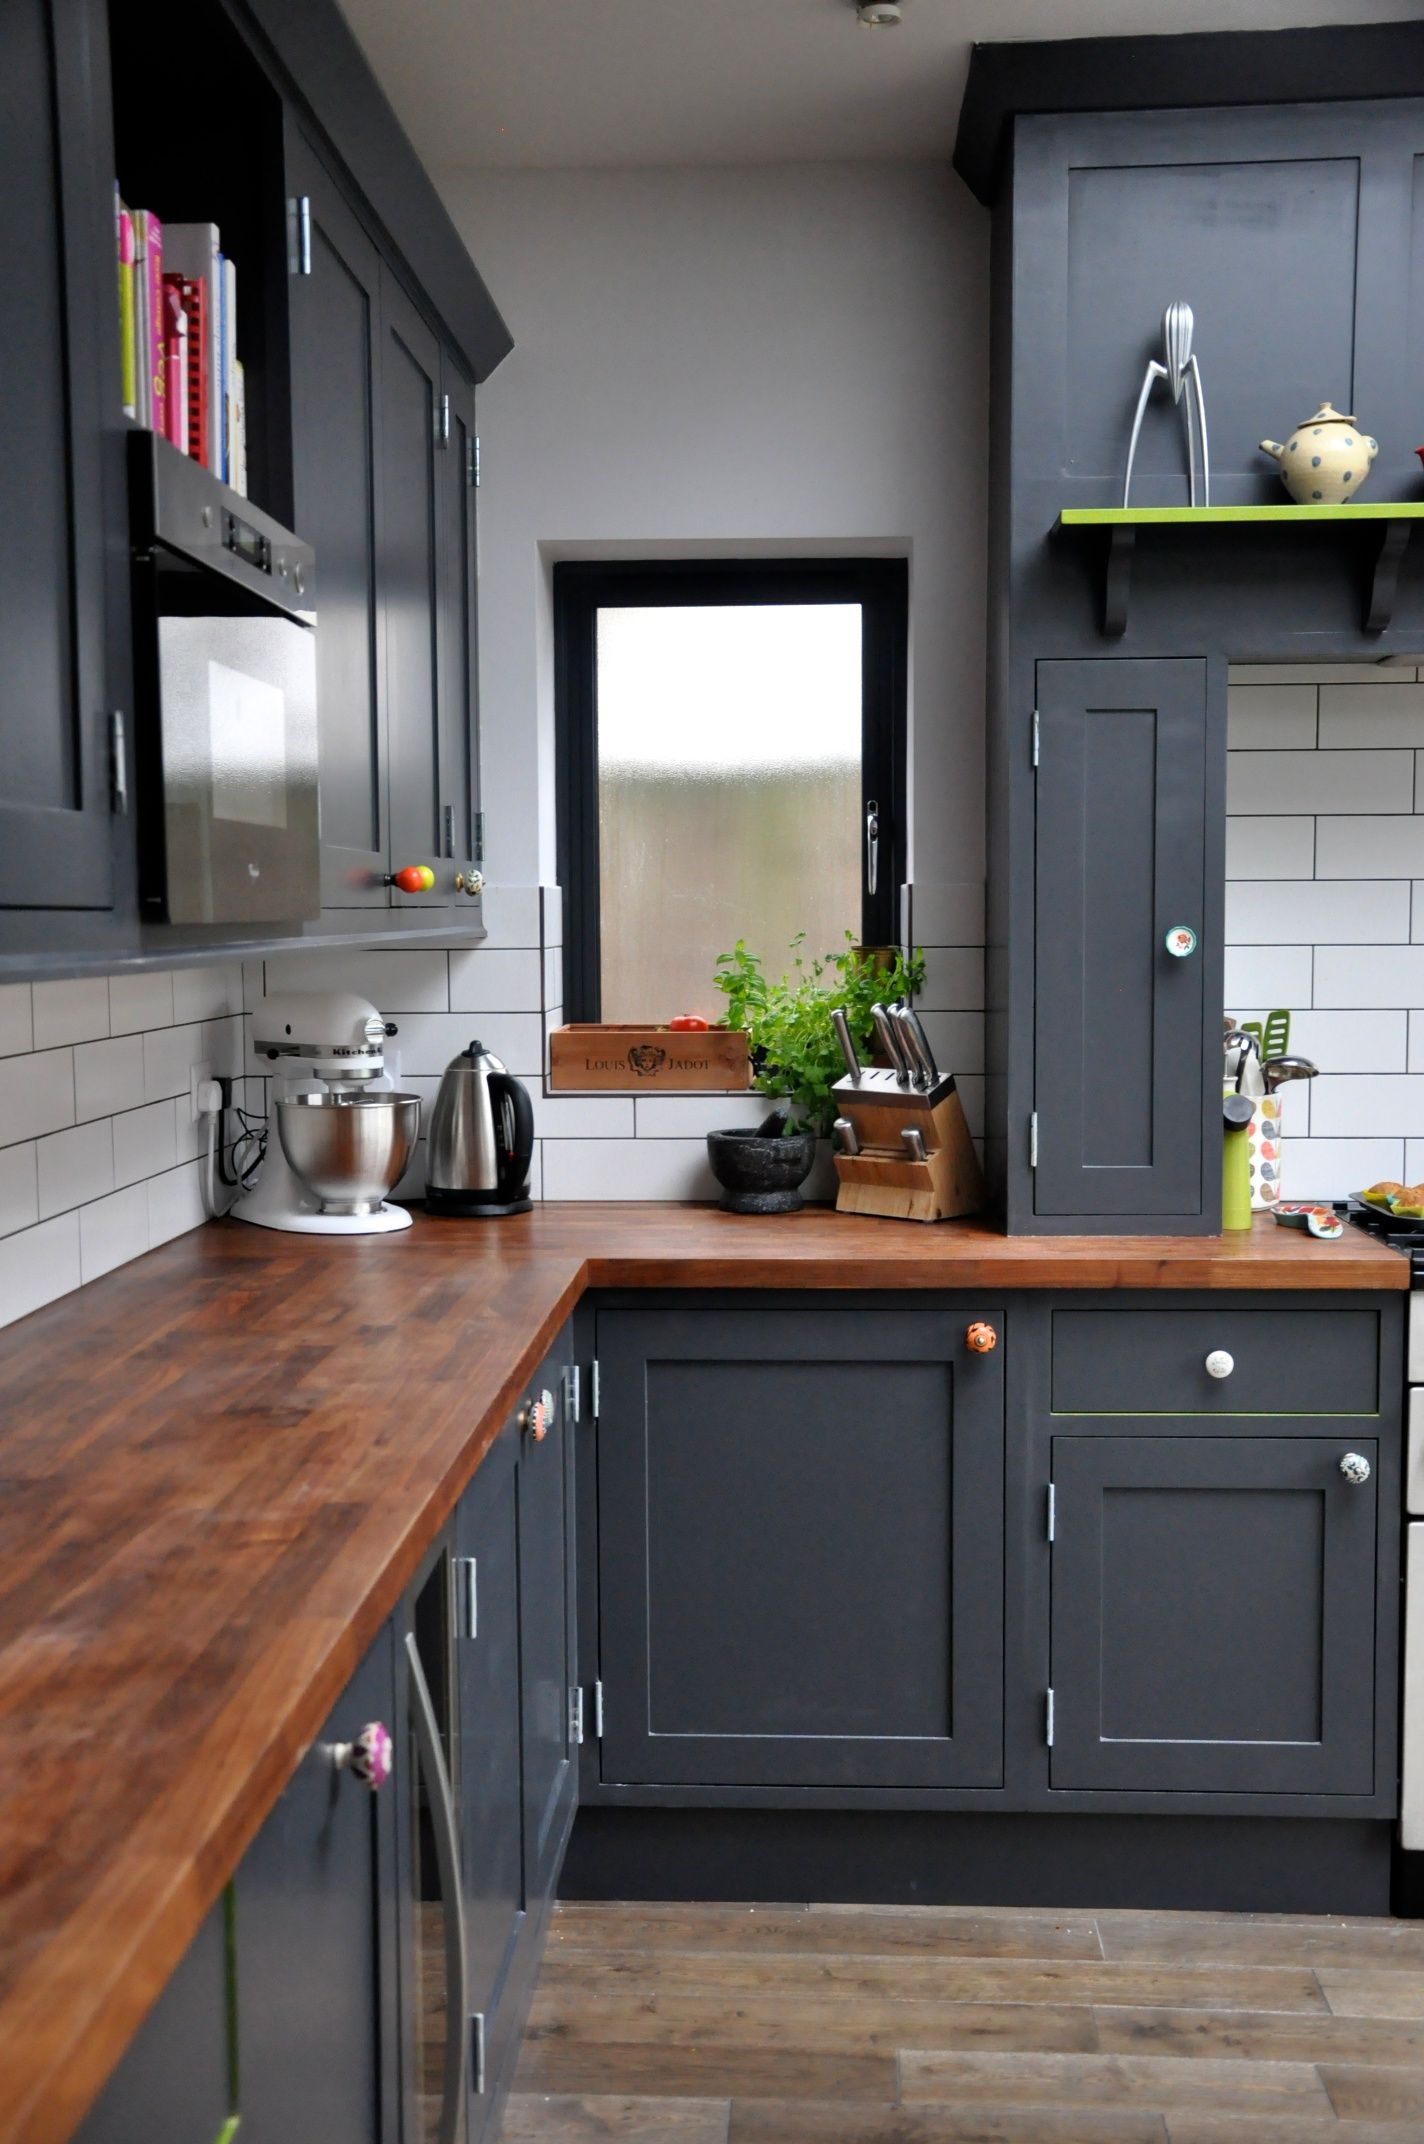 Wooden counters can not only look very chic but will also save